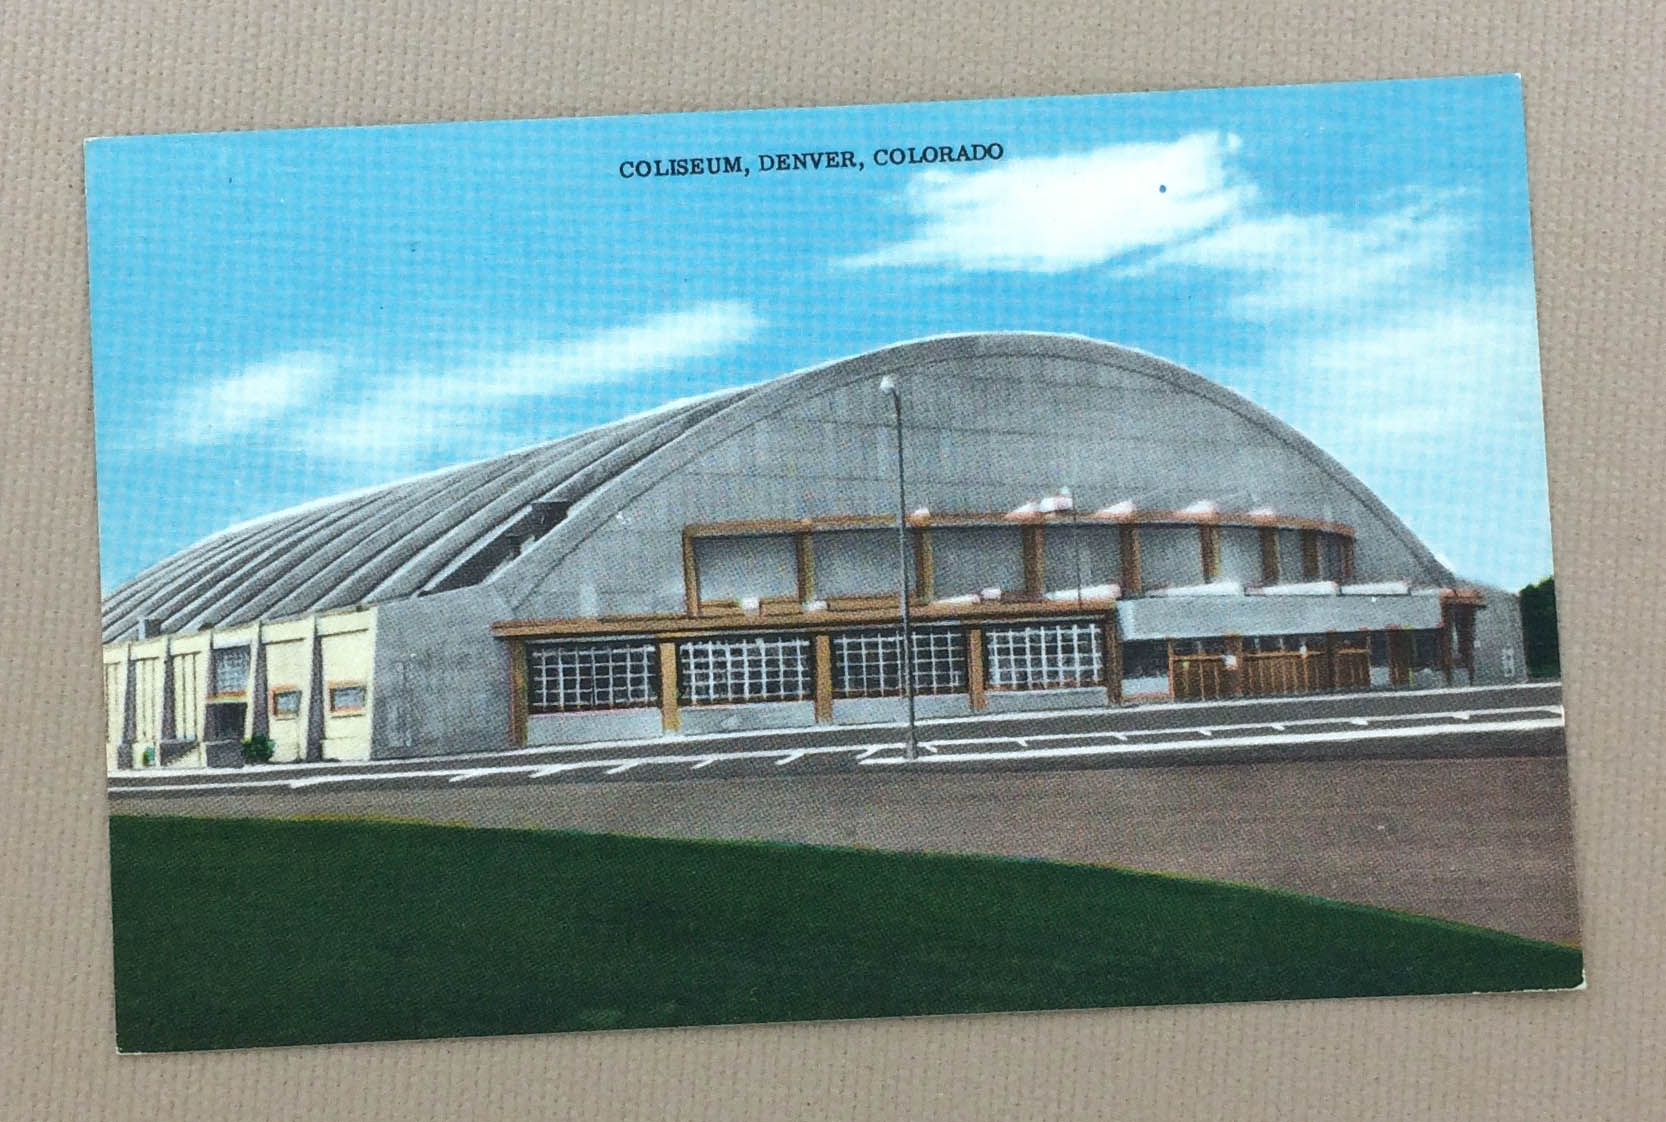 Denver Coliseum Postcard